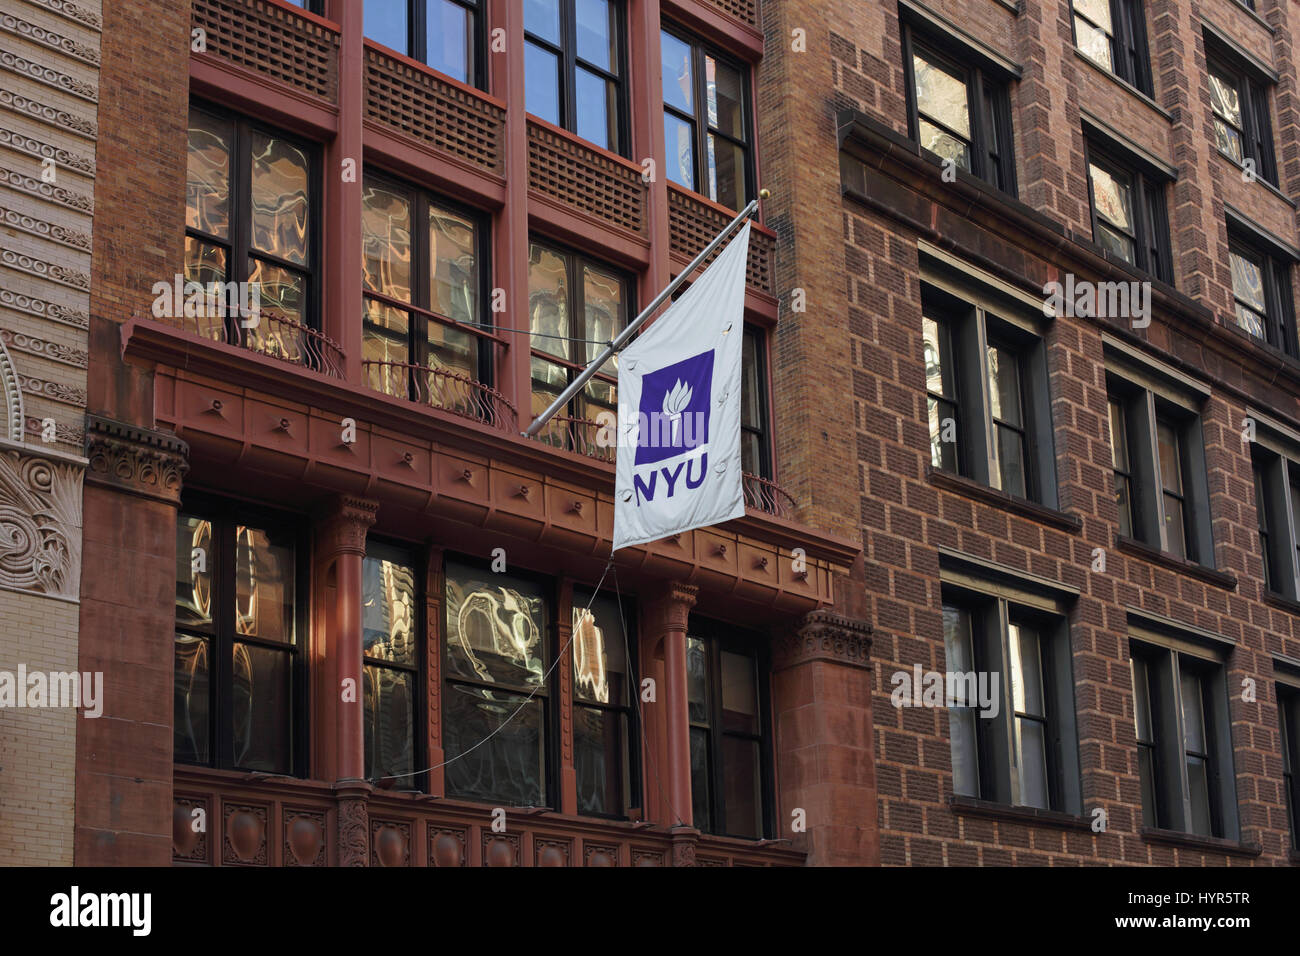 New York, NY, USA - February 6, 2017: A New York University banner hangs from a flagpole outside college buildings - Stock Image